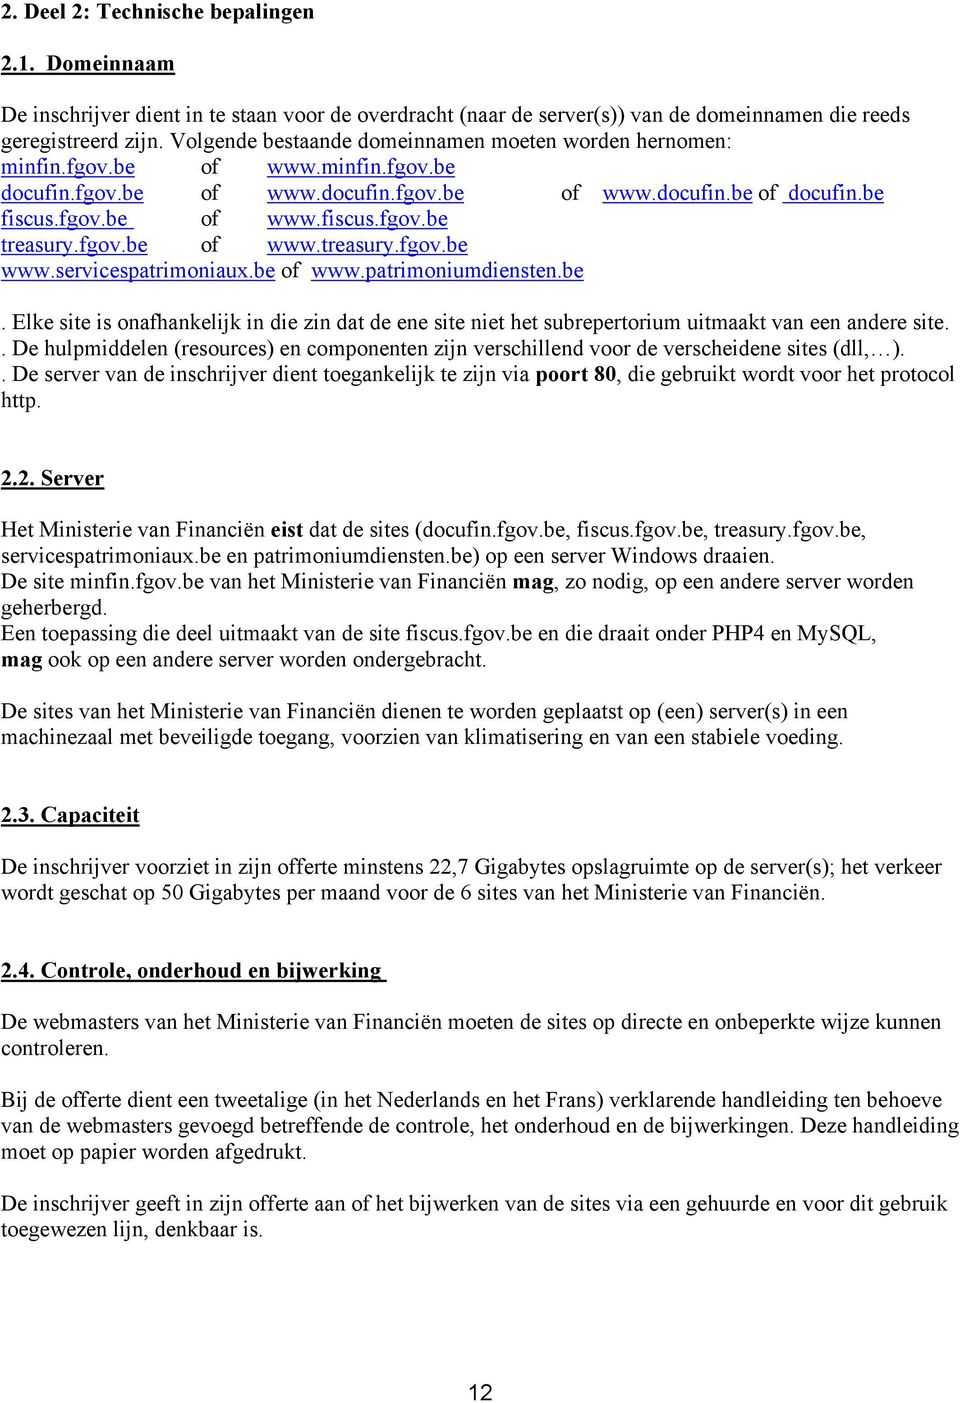 fgov.be of www.treasury.fgov.be www.servicespatrimoniaux.be of www.patrimoniumdiensten.be. Elke site is onafhankelijk in die zin dat de ene site niet het subrepertorium uitmaakt van een andere site.